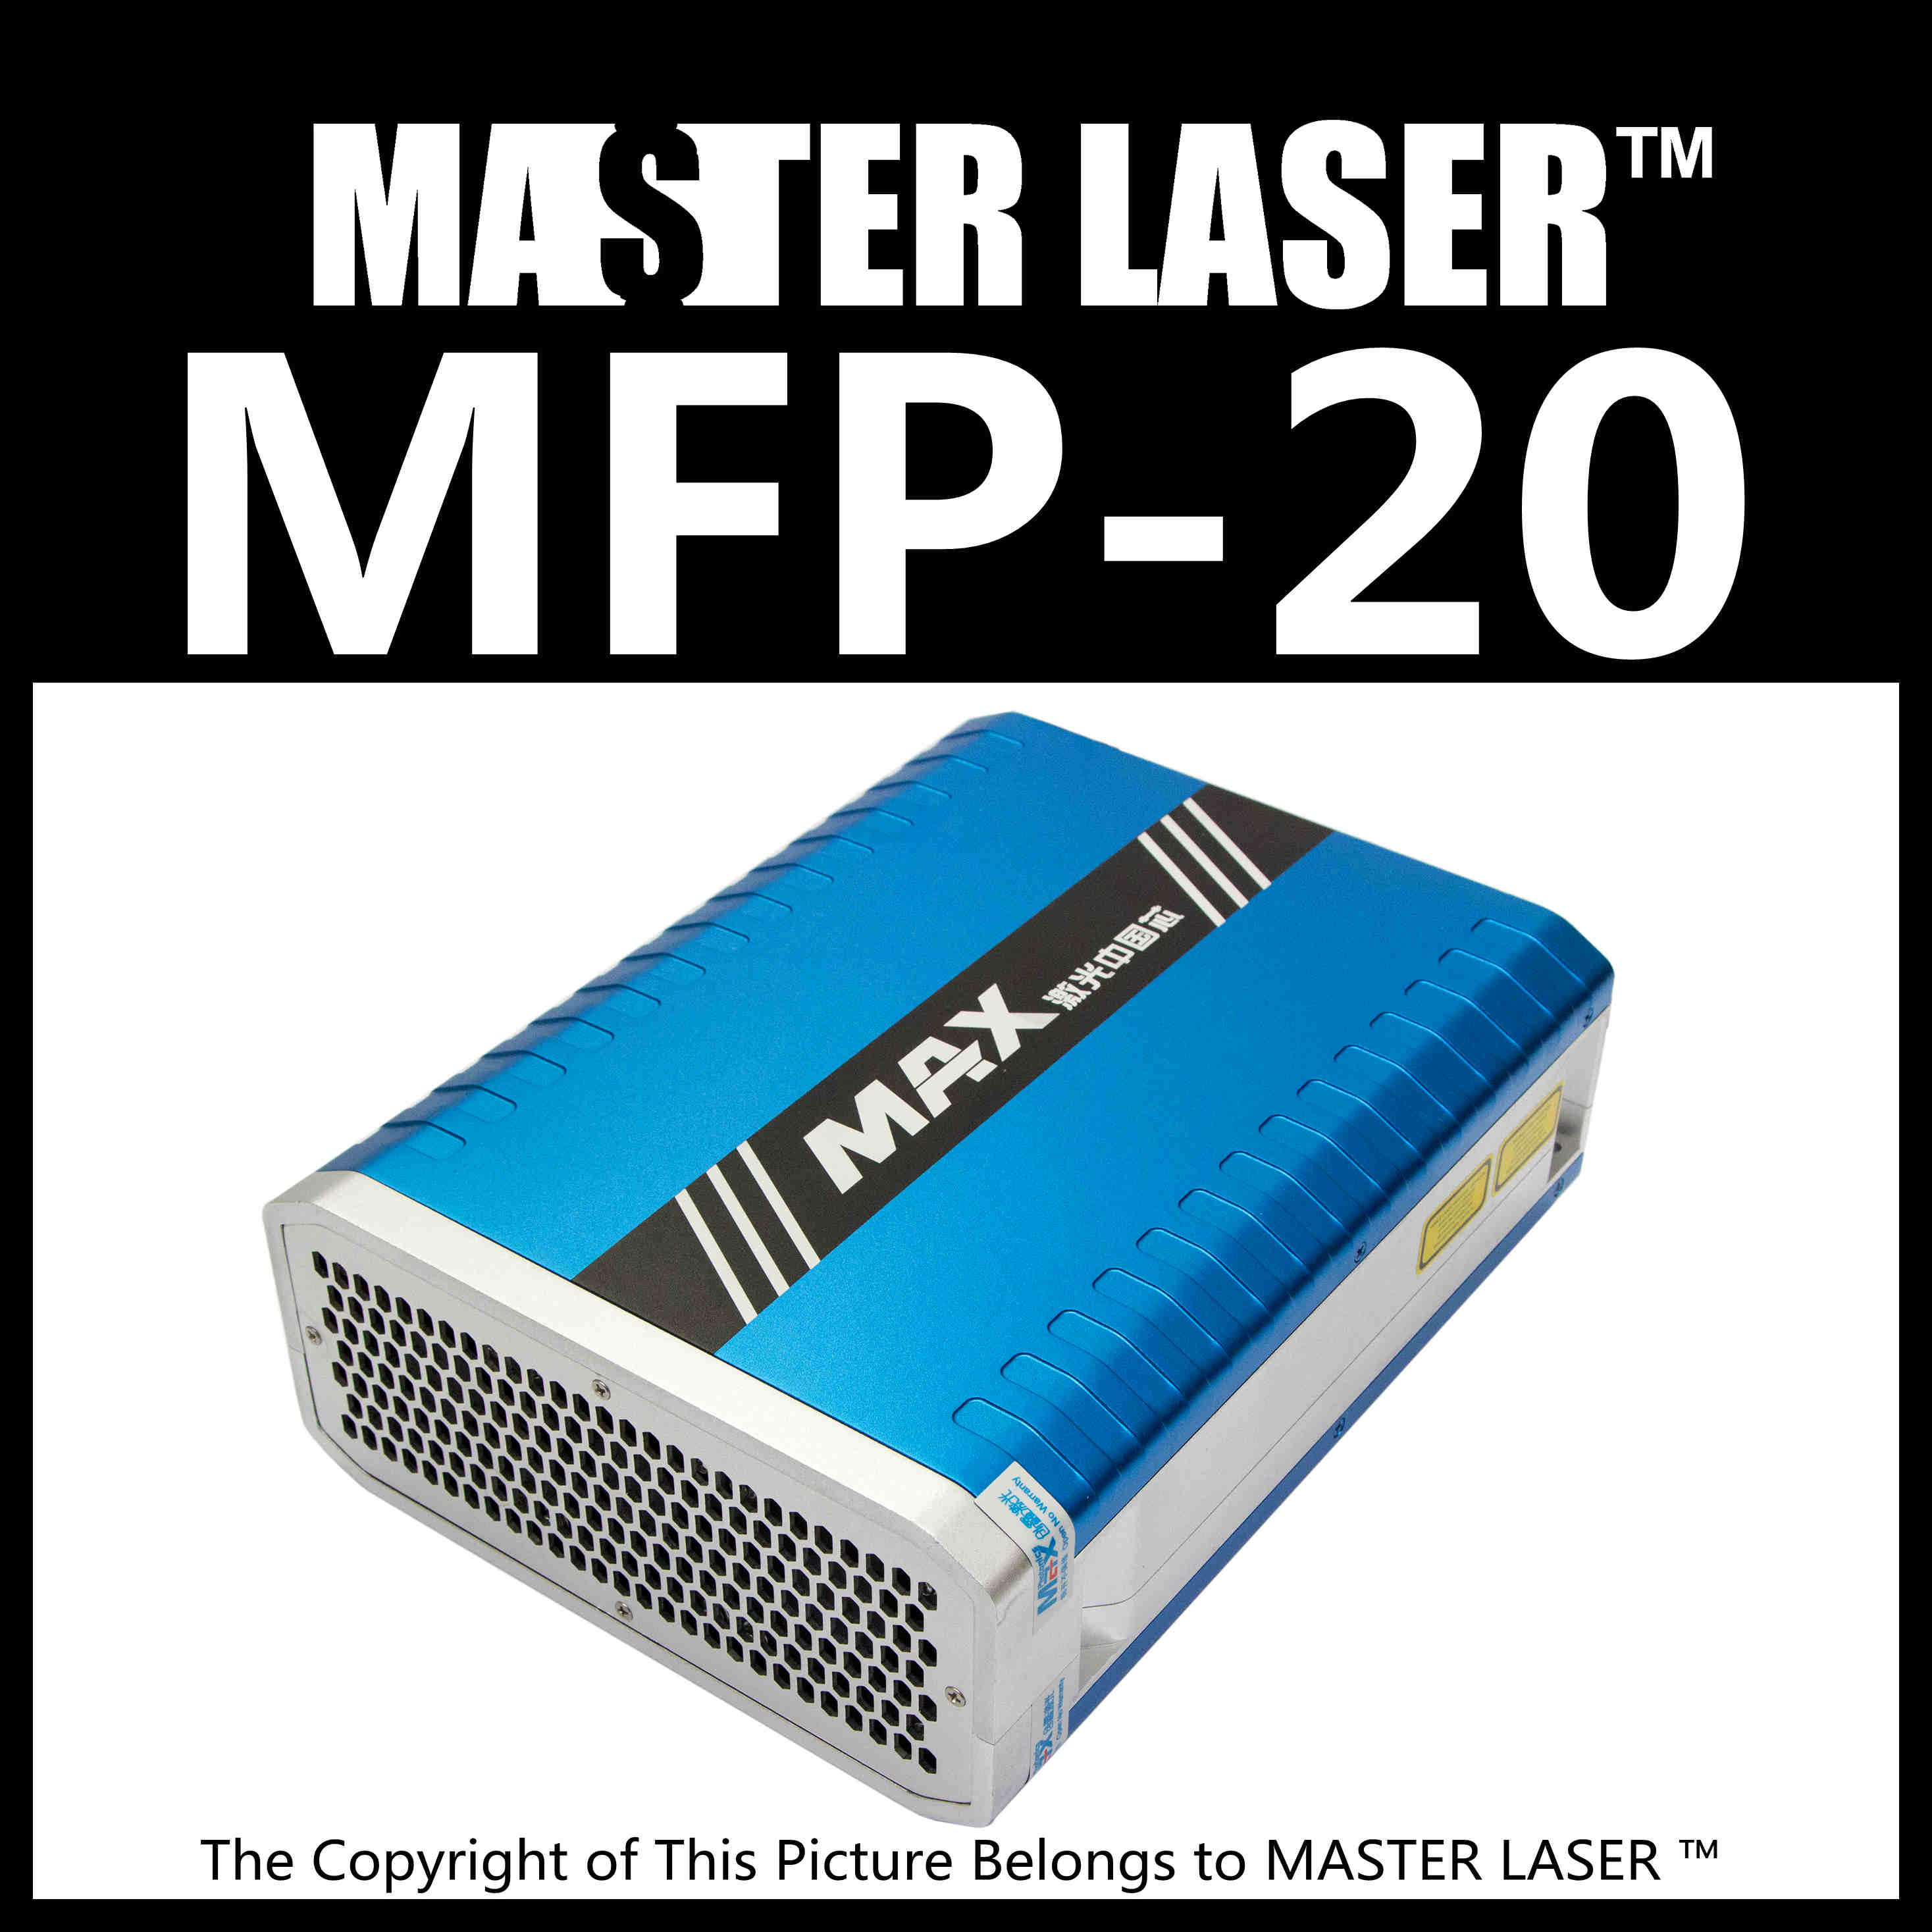 Low Price MAX PHOTONICS MFP-20  Laser Marking Machine DIY PART Fiber Laser 20w fiber laser marking engraving machine diy part small size industry computer